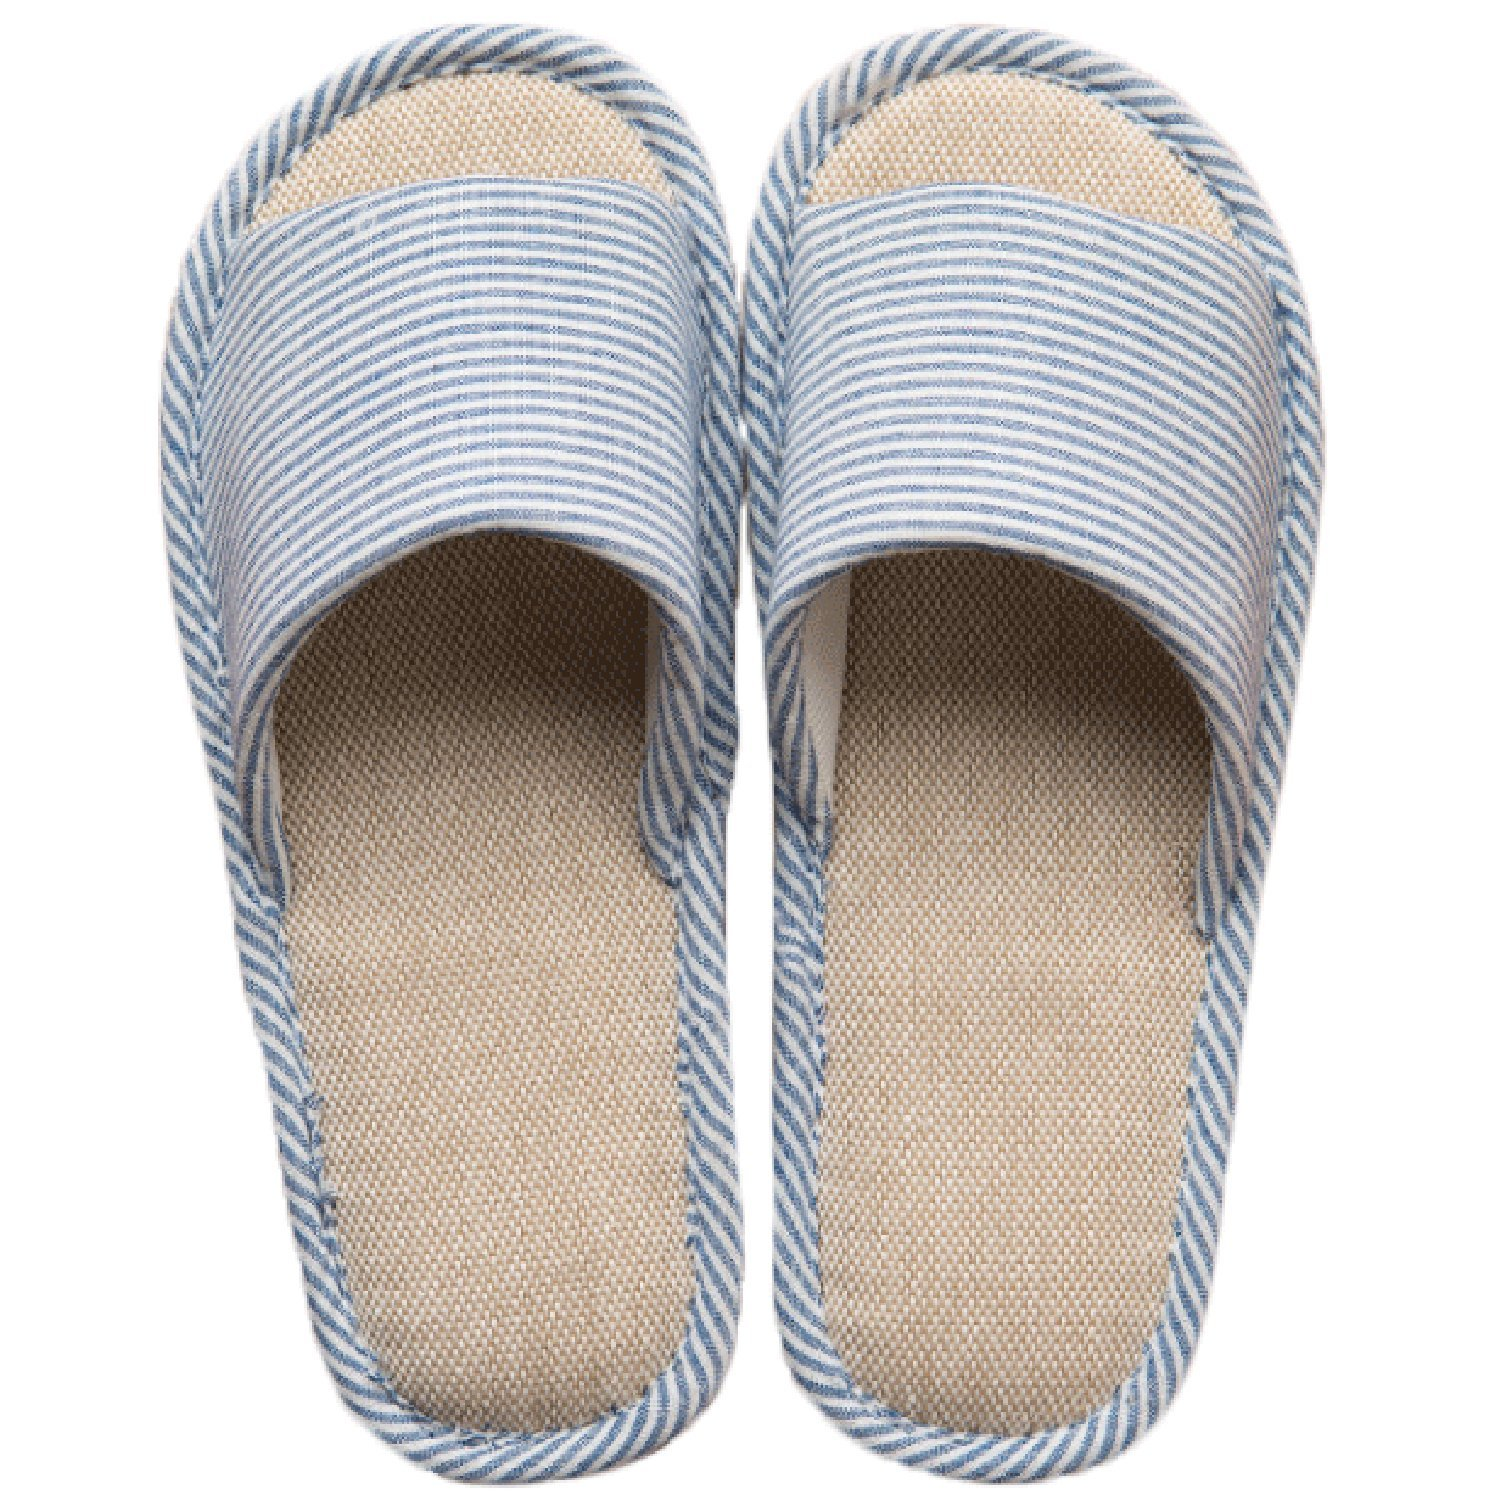 LYMMC House Slippers,Women's and Men's Cotton Causal Soft Slippers Anti-Slip for Indoor and Outdoor (Blue)